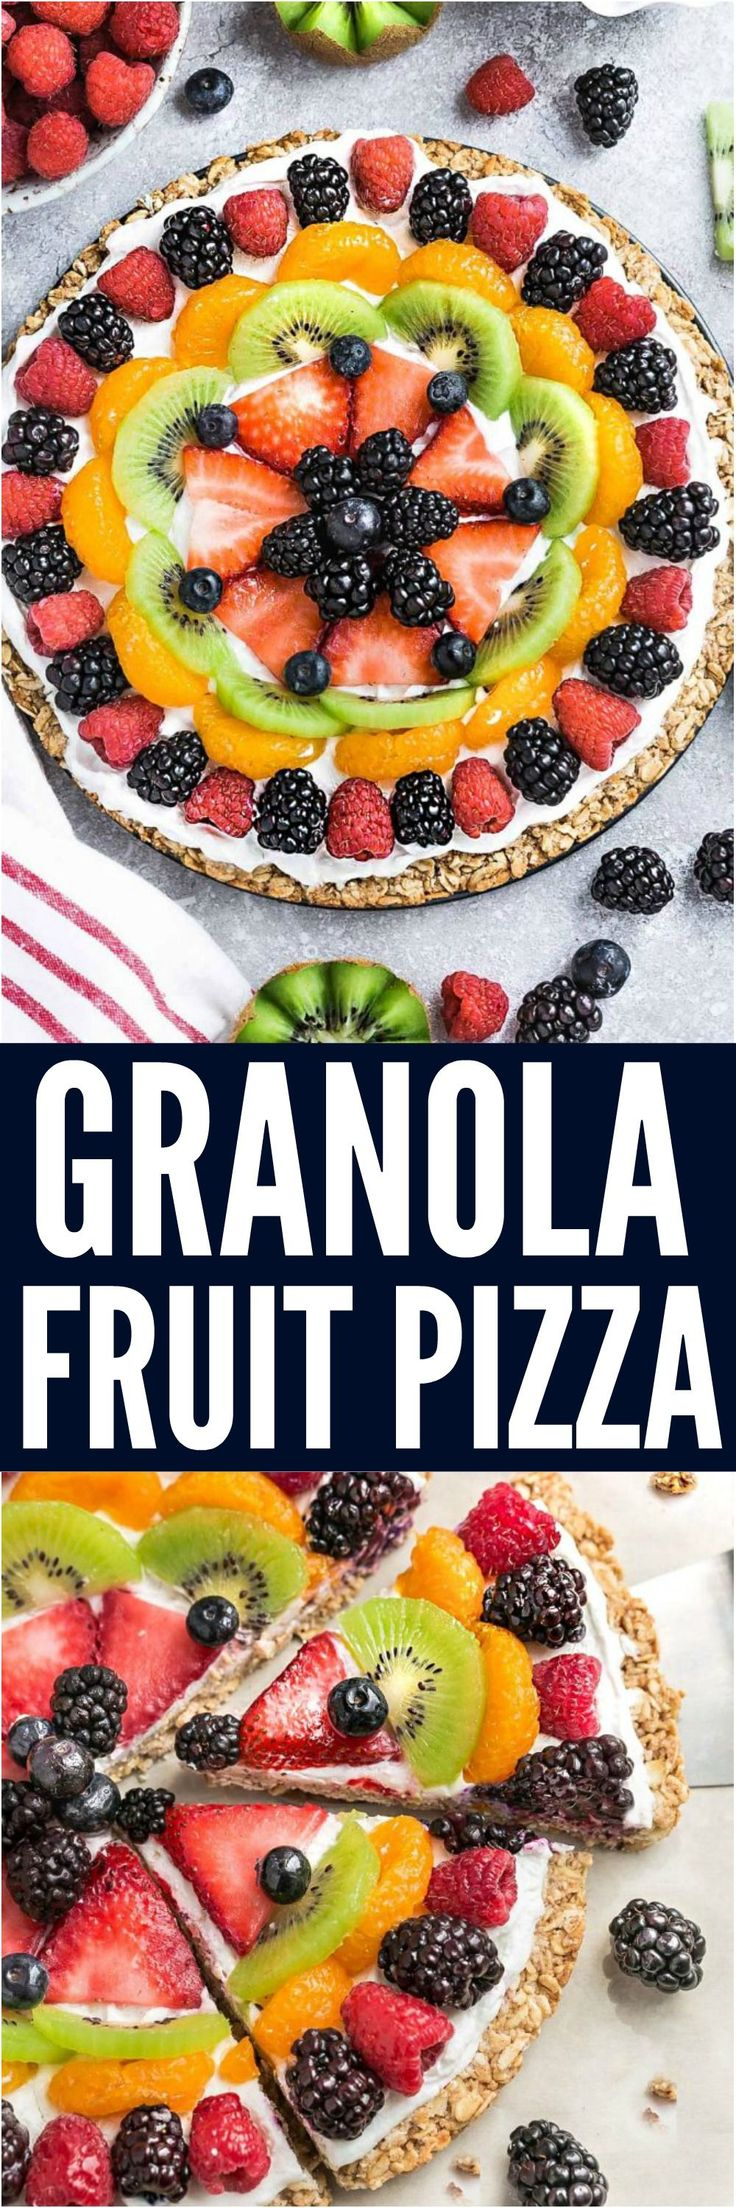 Granola Fruit Pizza - a healthy and delicious breakfast, brunch or dessert and perfect for summer parties. Best of all, it's so simple to make with your favorite fresh fruit and easy granola crust.